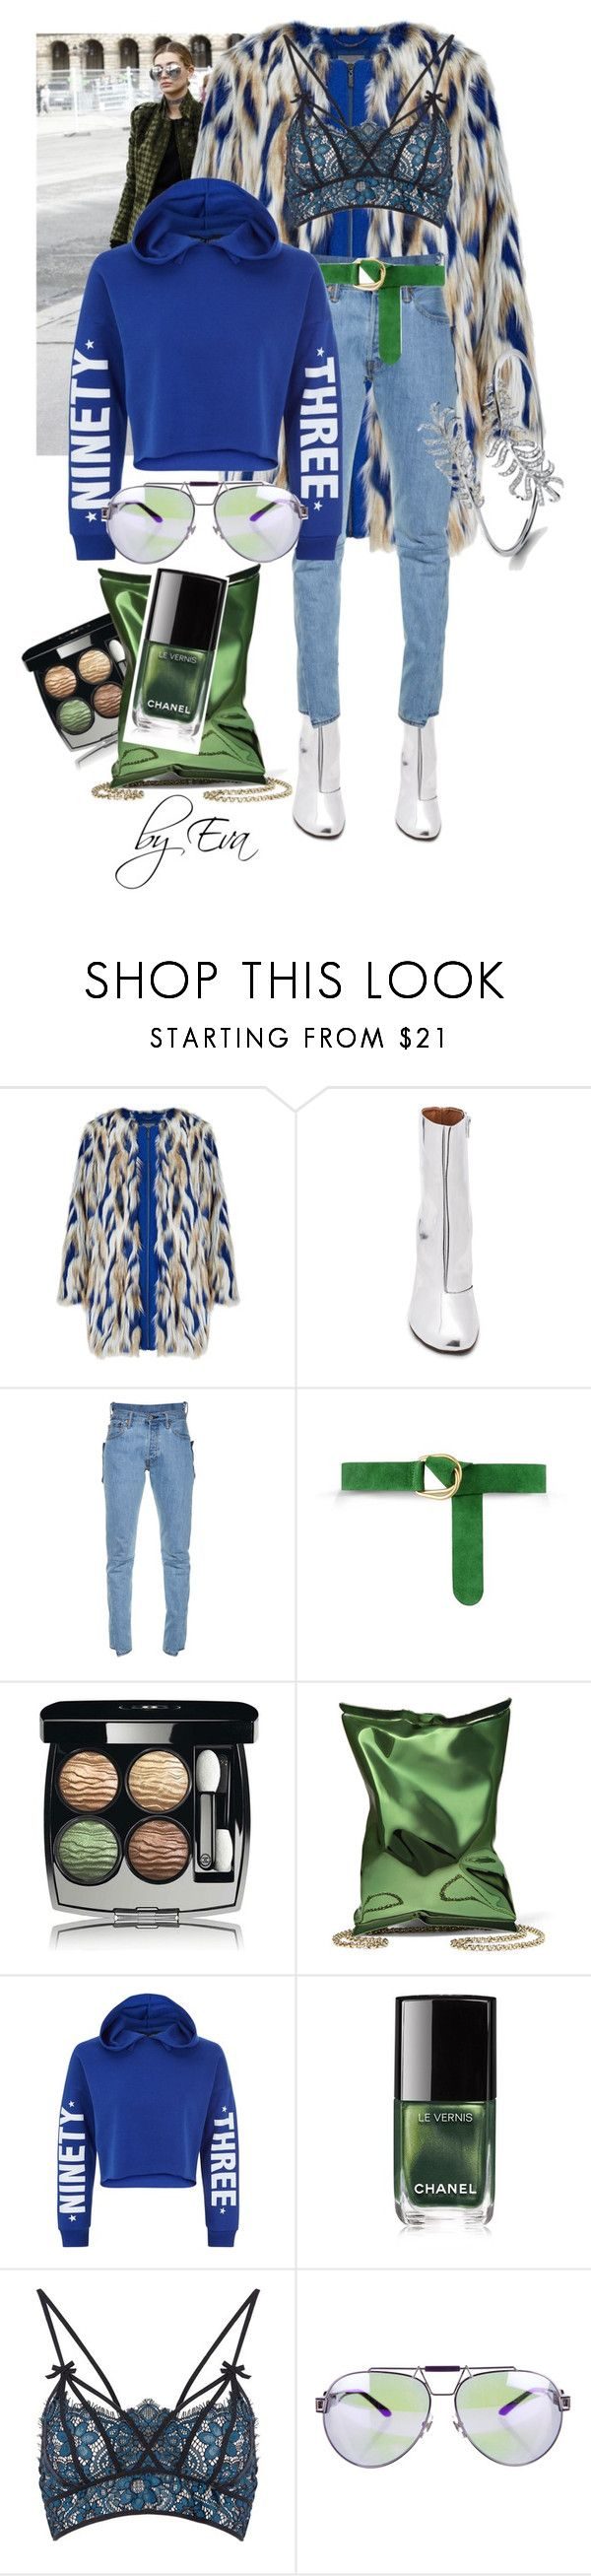 """""""Hailey Baldwin Style"""" by model-approved ❤ liked on Polyvore featuring Vetements, Barbara Bui, Chanel, Anya Hindmarch, New Look, For Love & Lemons and Versace"""